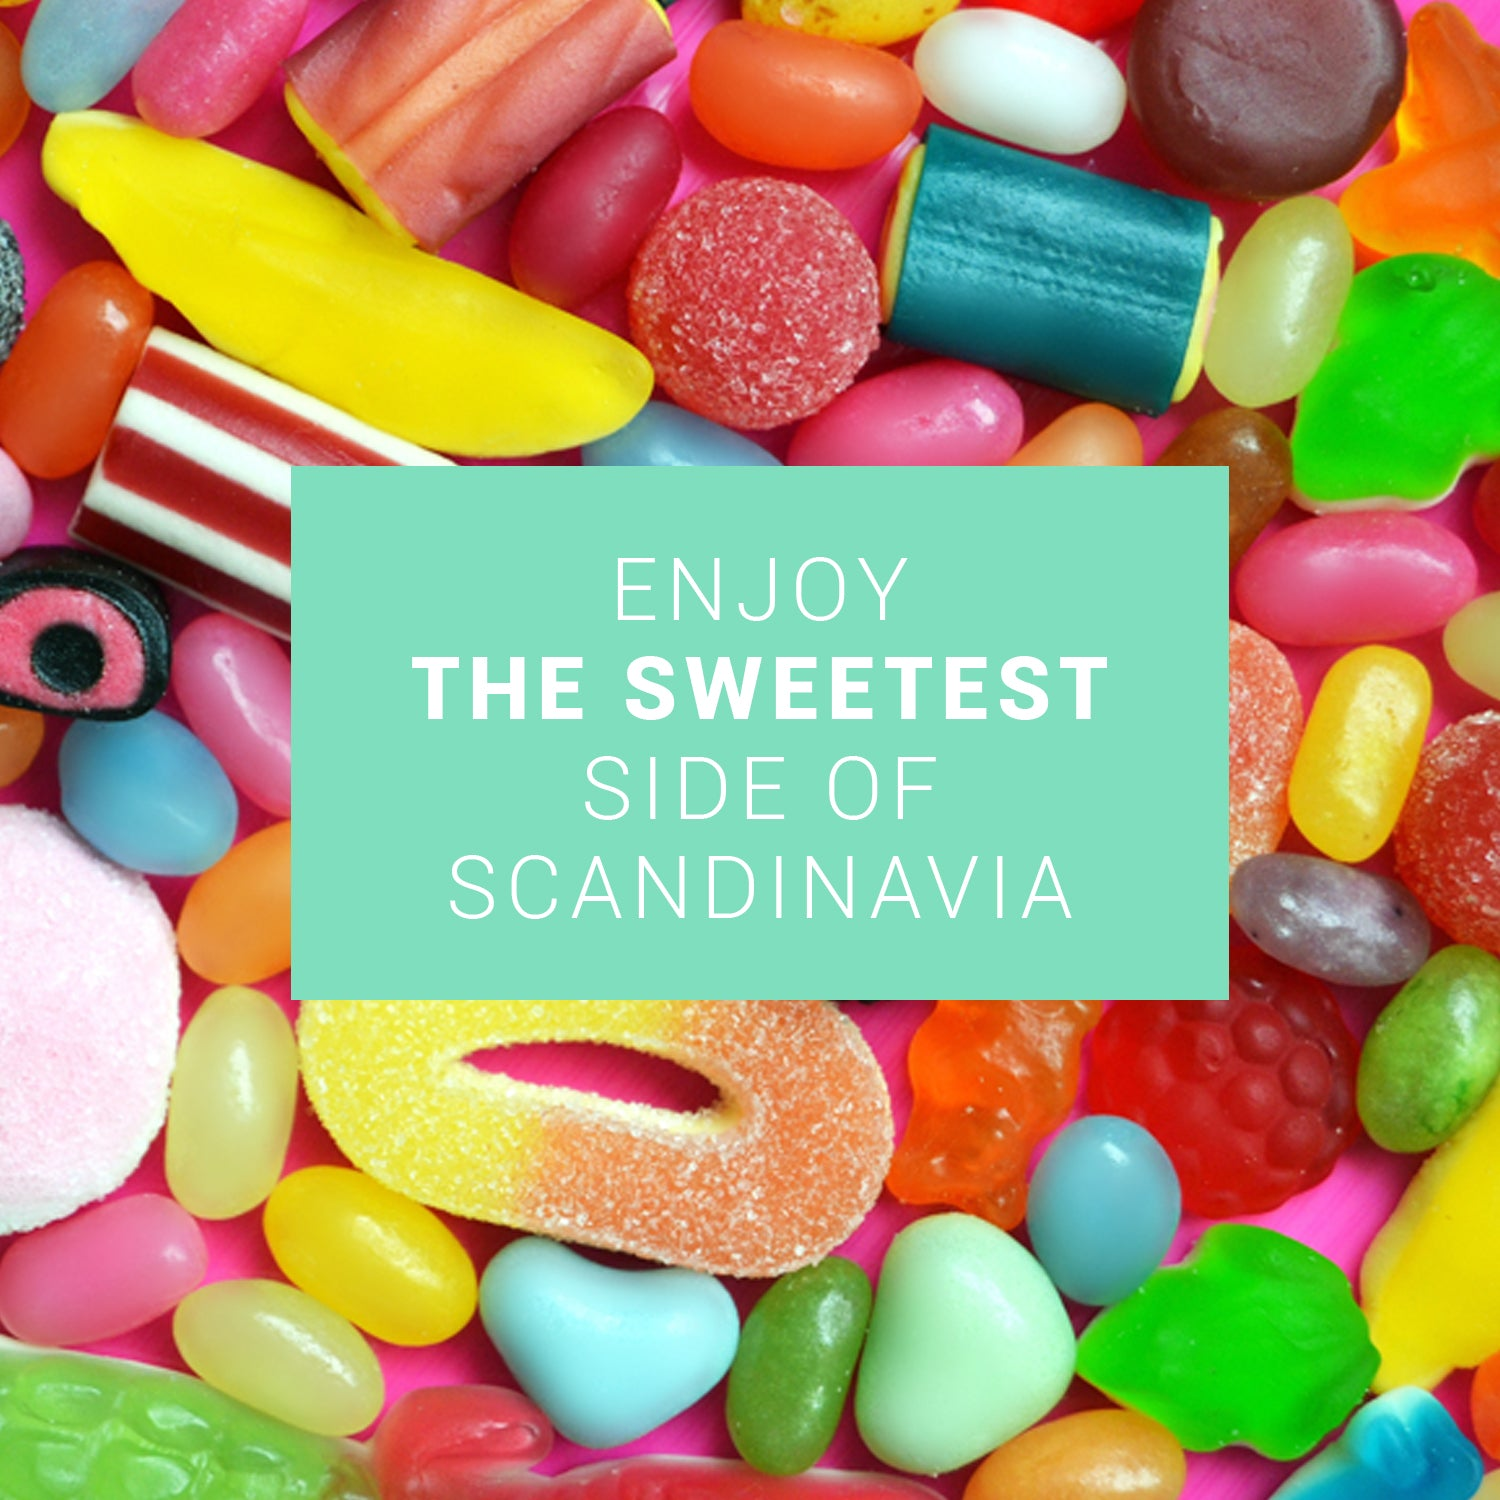 Candy image with caption: Enjoy the sweetest side of Scandinavia